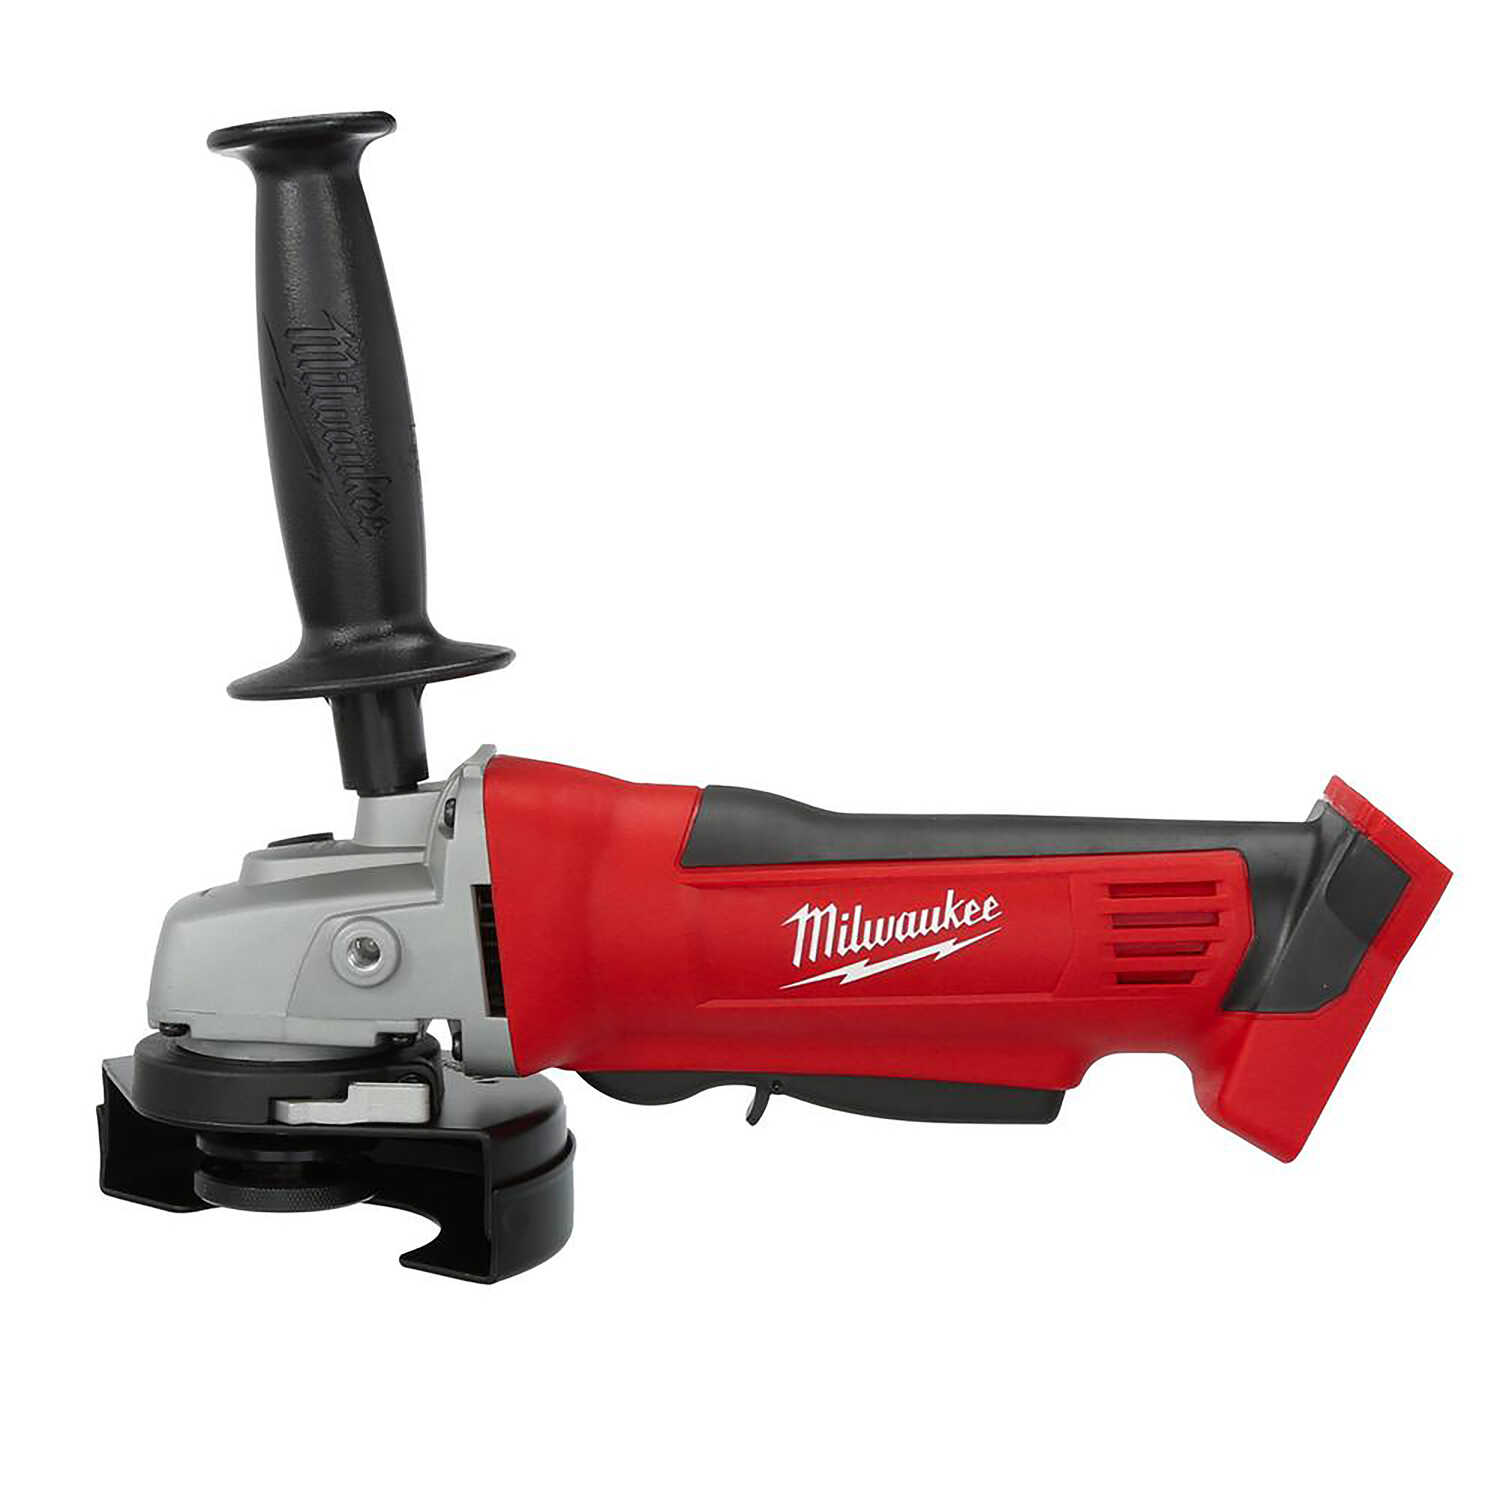 Tremendous Milwaukee M18 Cordless 18 Volt 4 1 2 In Cut Off Angle Lamtechconsult Wood Chair Design Ideas Lamtechconsultcom